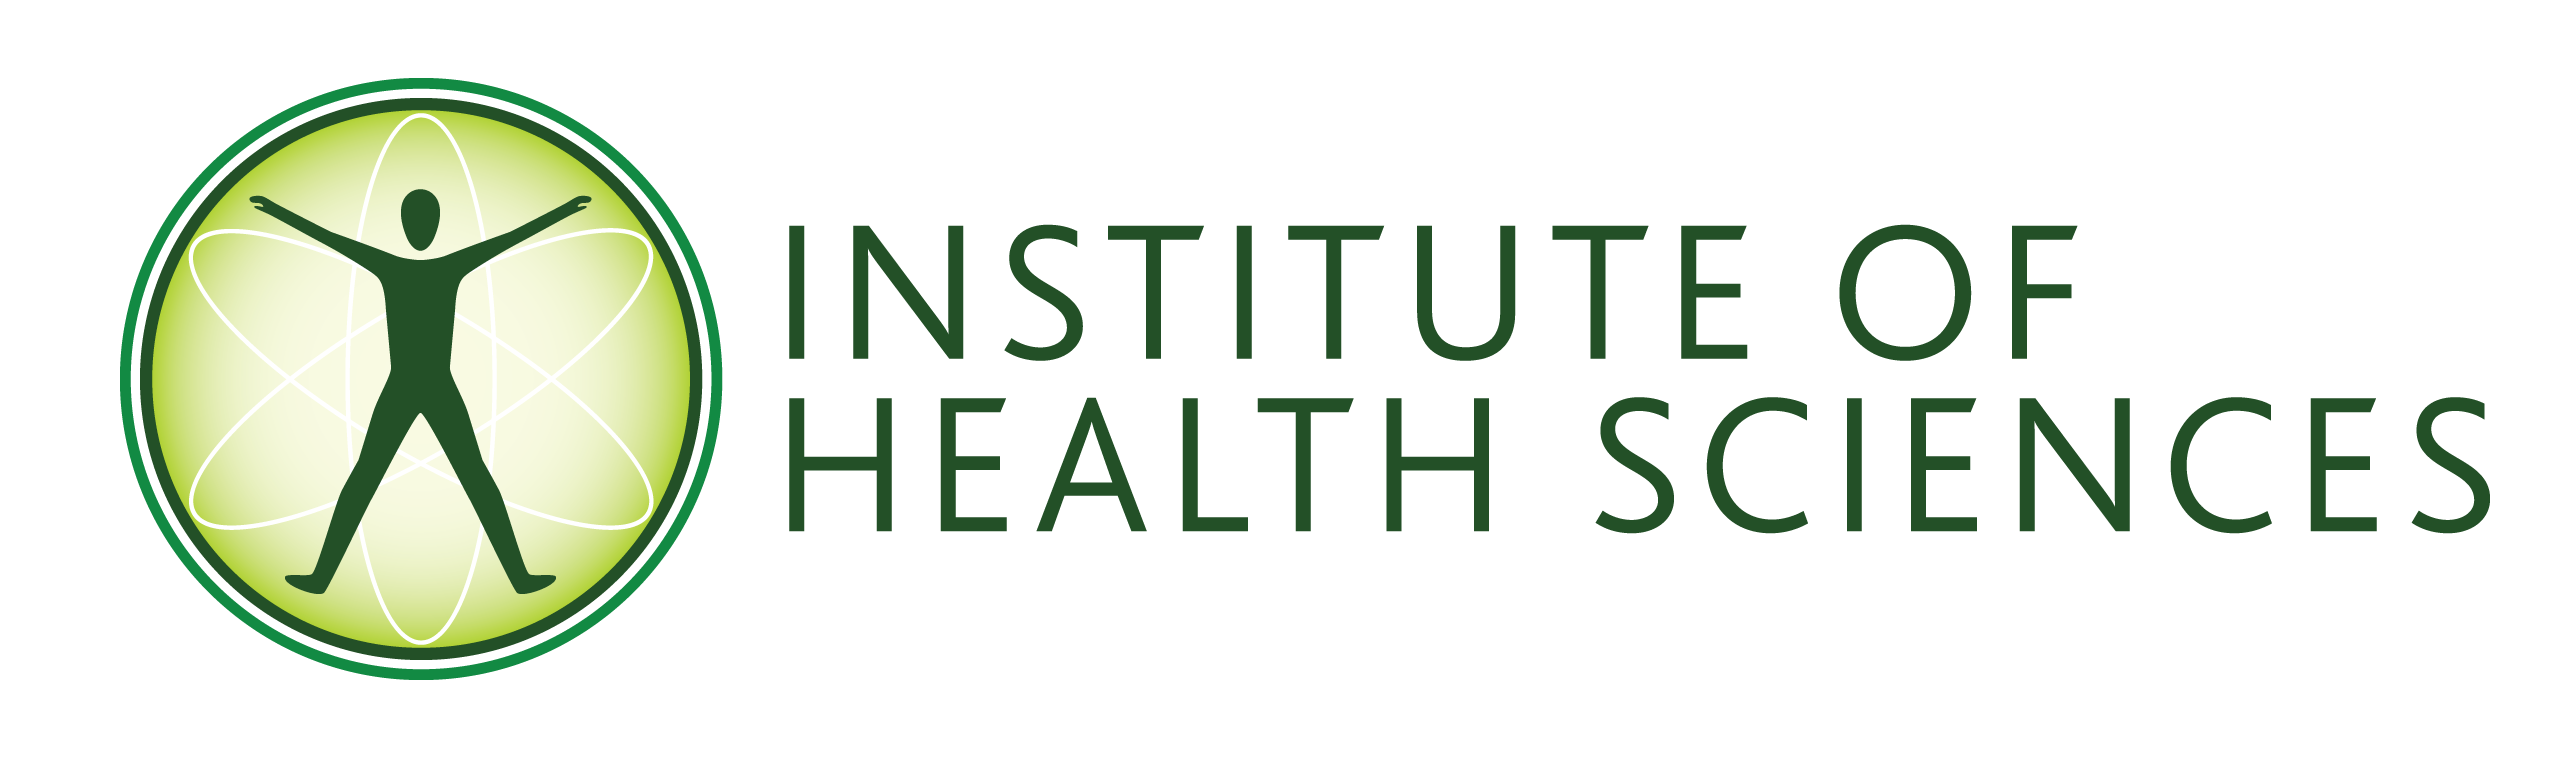 Ihs Uk Health Wellness Coaching Certification Real Balance